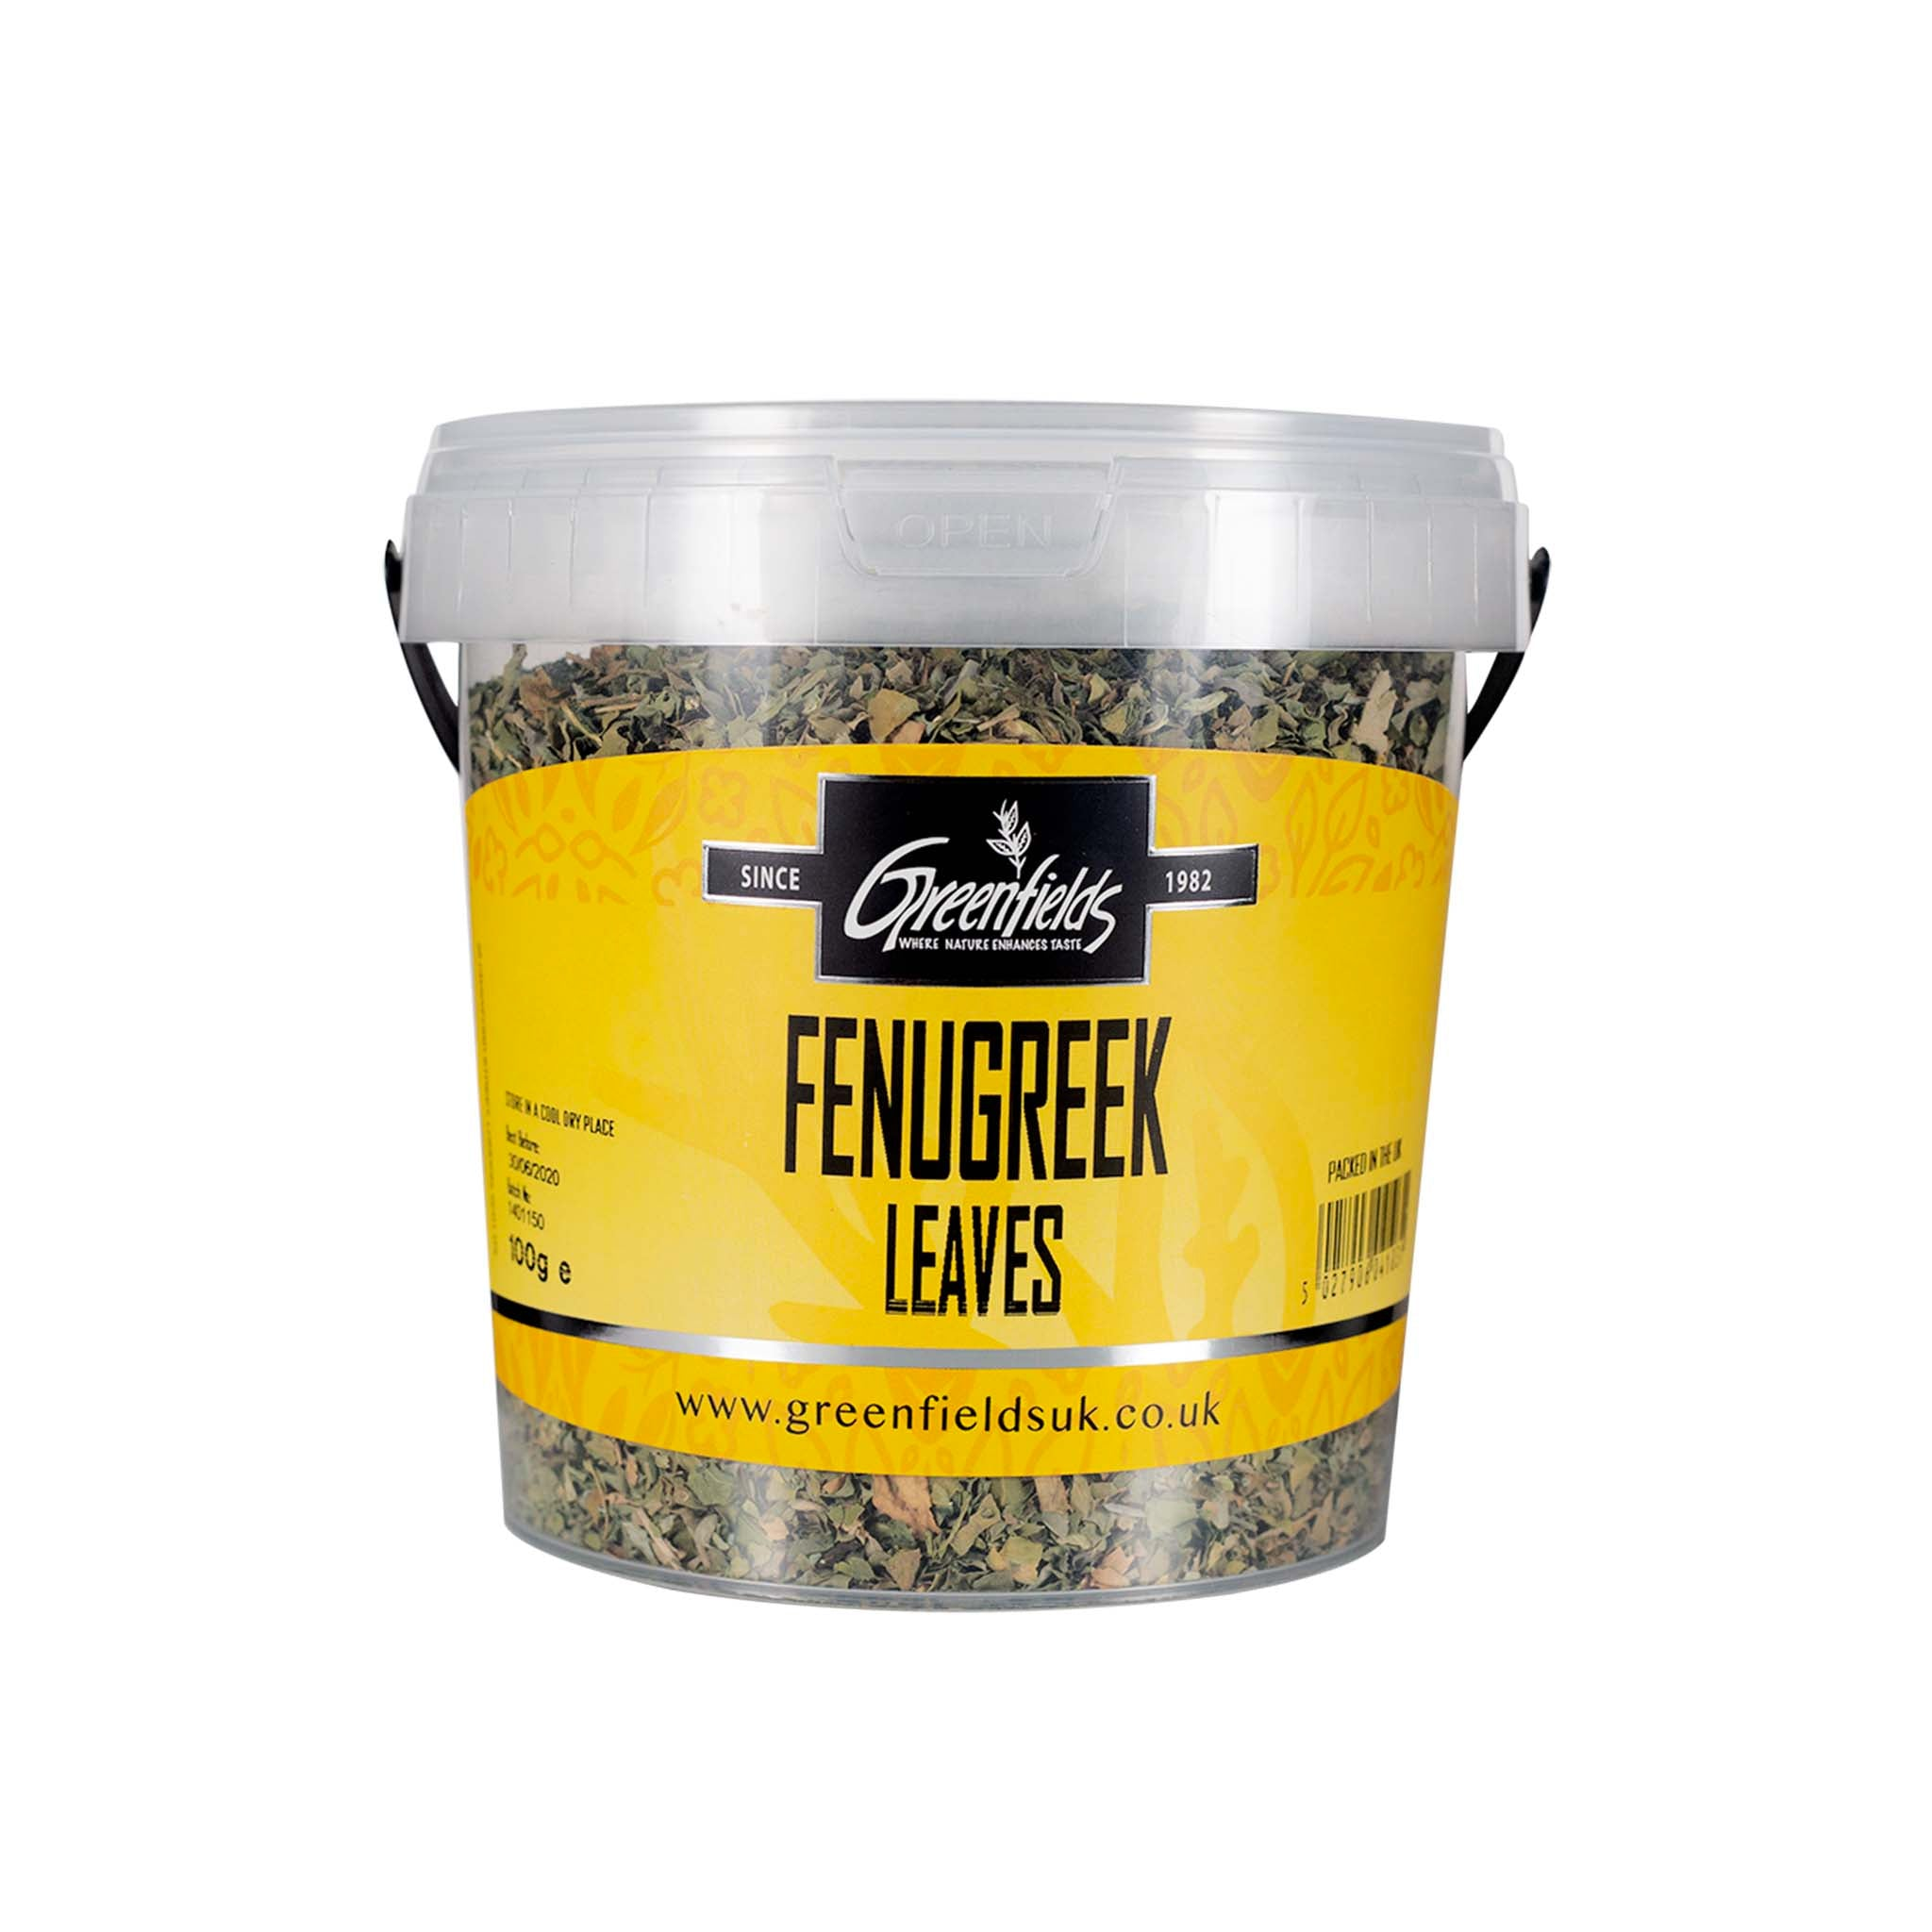 Greenfields Fenugreek Leaves Catering Size Ingredients Herbs & Spices Catering Size Herbs & Spices